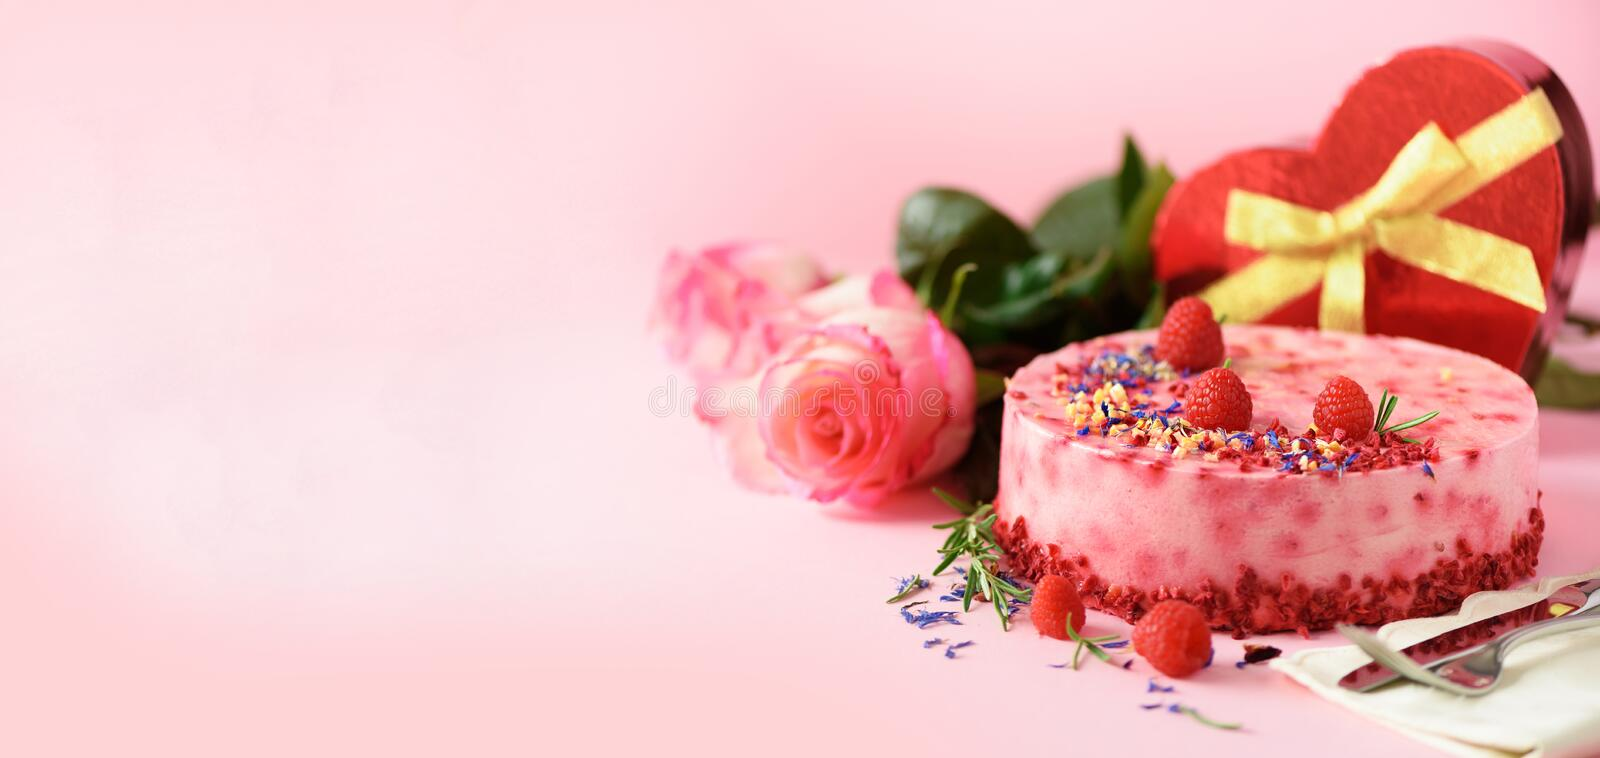 Gift boxes in shape of heart, roses, raspberry cake with fresh berries, rosemary and dry flowers on pink background. Banner, copy royalty free stock images